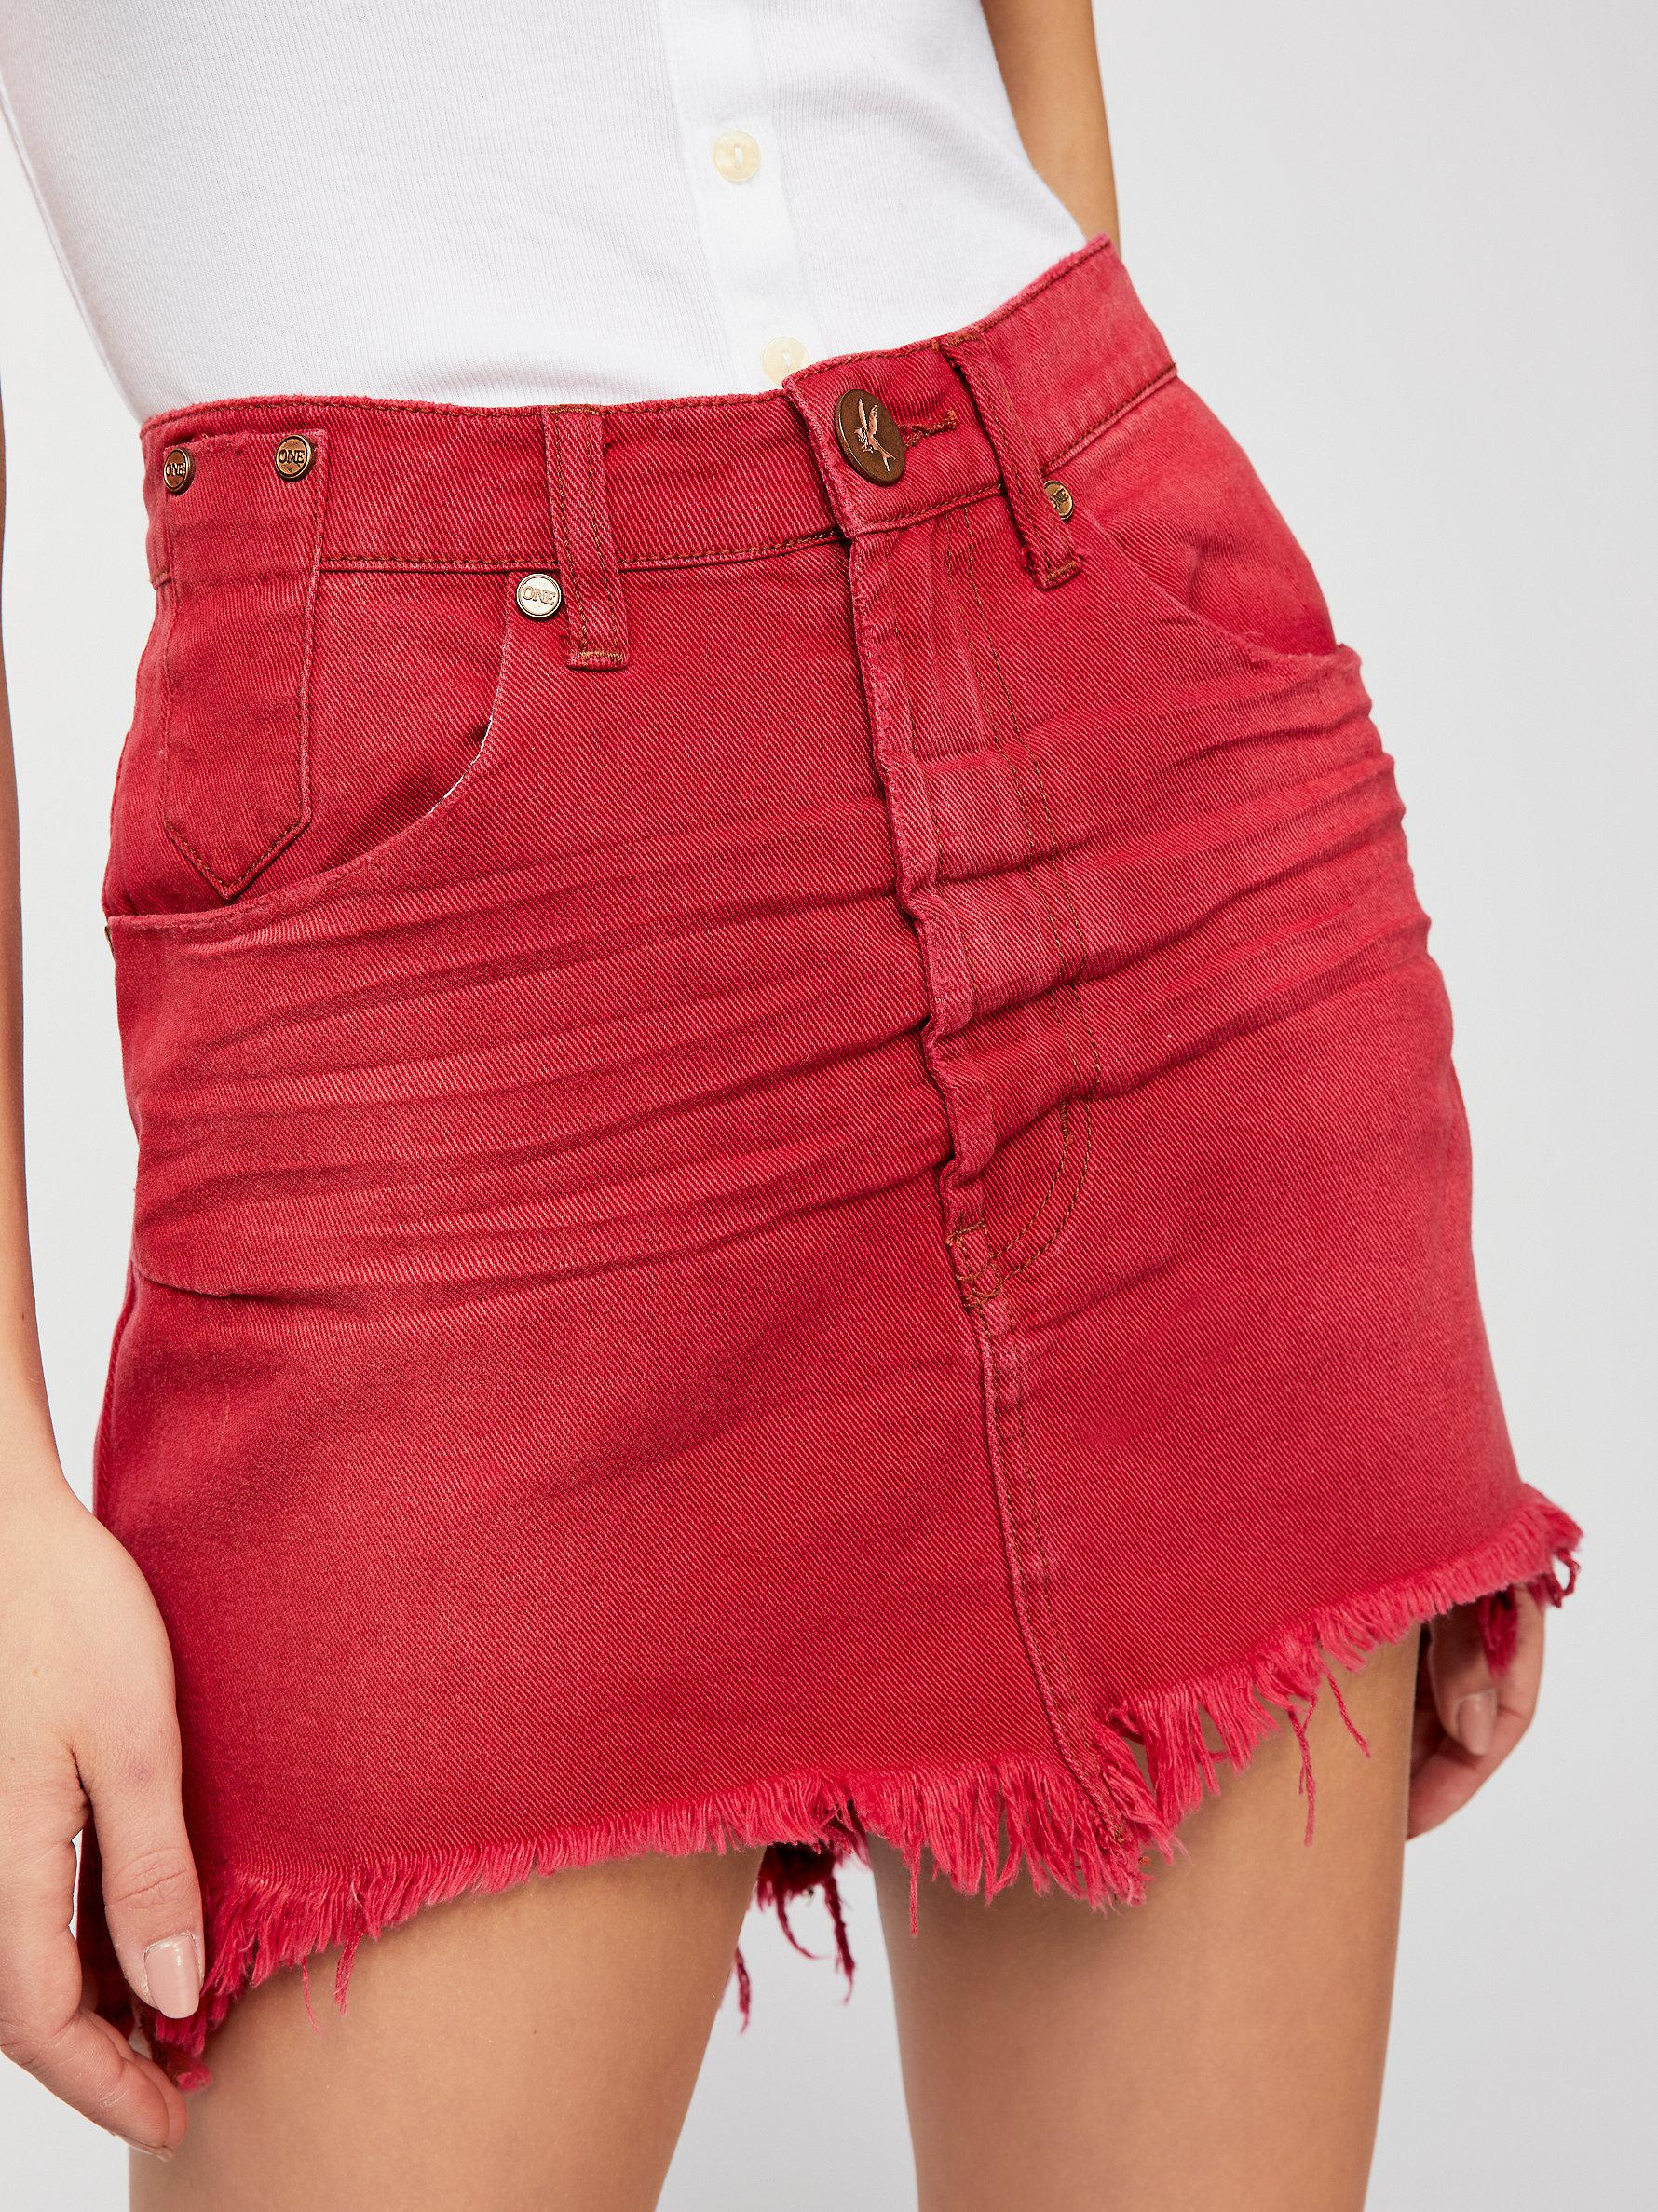 2cdb0a79a910cf Free People Oneteaspoon Vanguard Mid-rise Relaxed Skirt in Red - Lyst